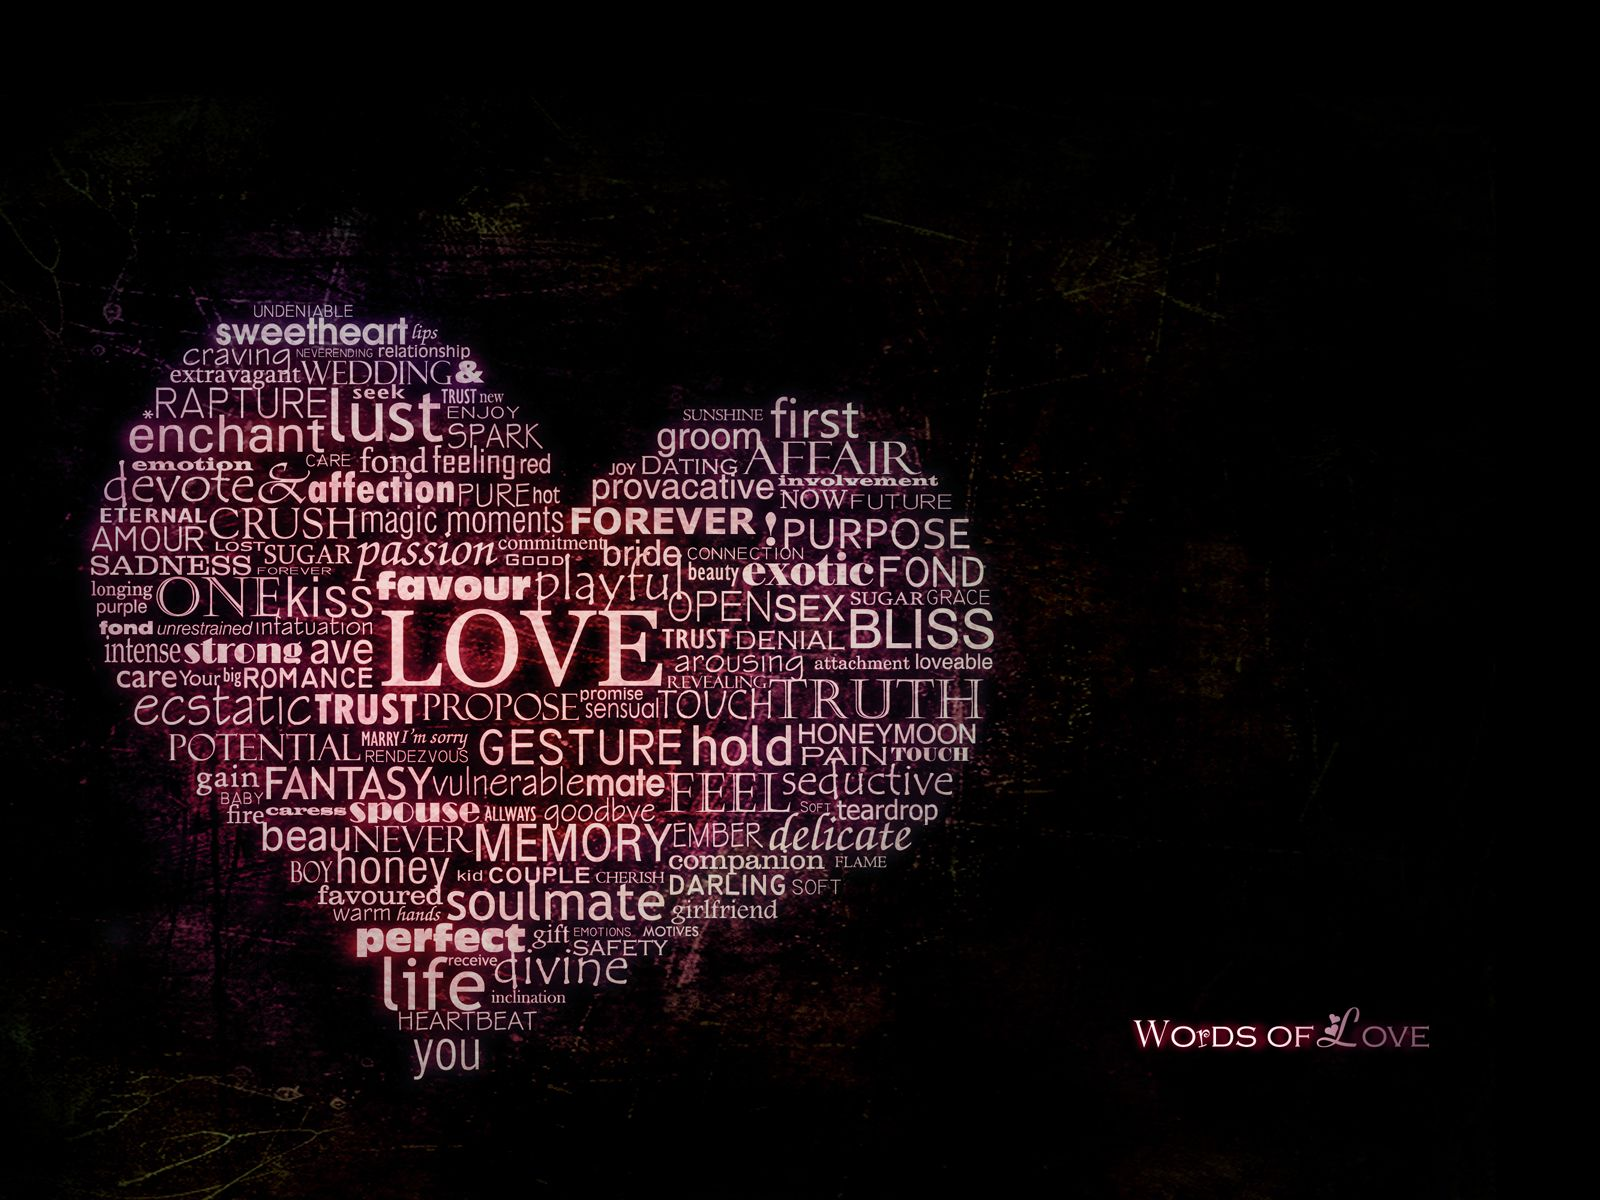 Words Of Love HD Wallpaper In Full HD From The Valentineu0027s Day Category.